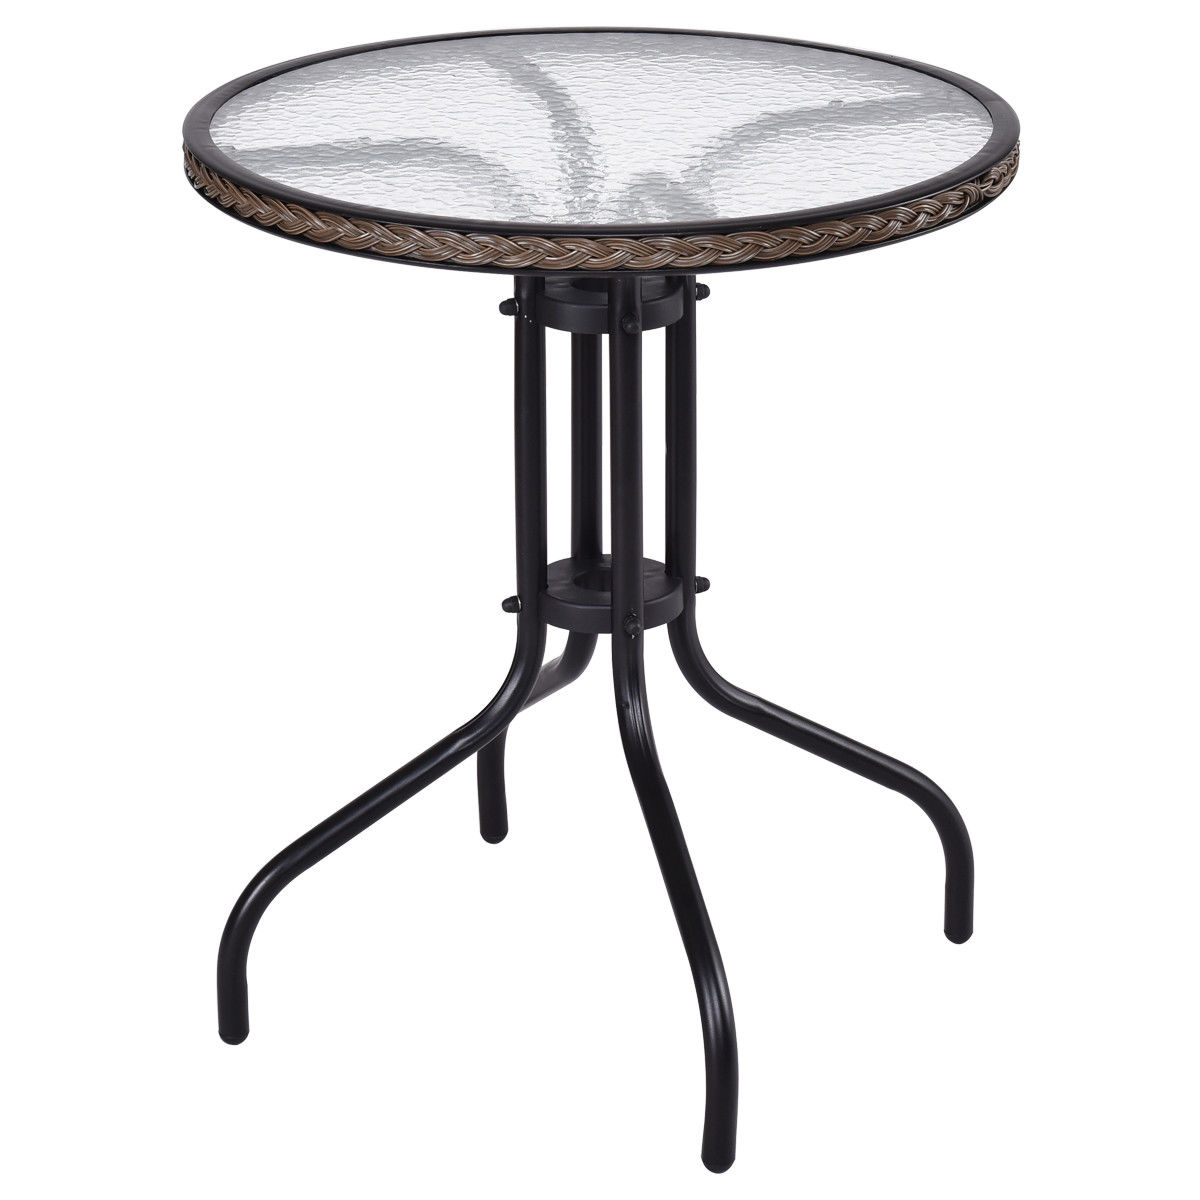 Gymax Steel Frame Glass Top Patio Round Table Dining Table